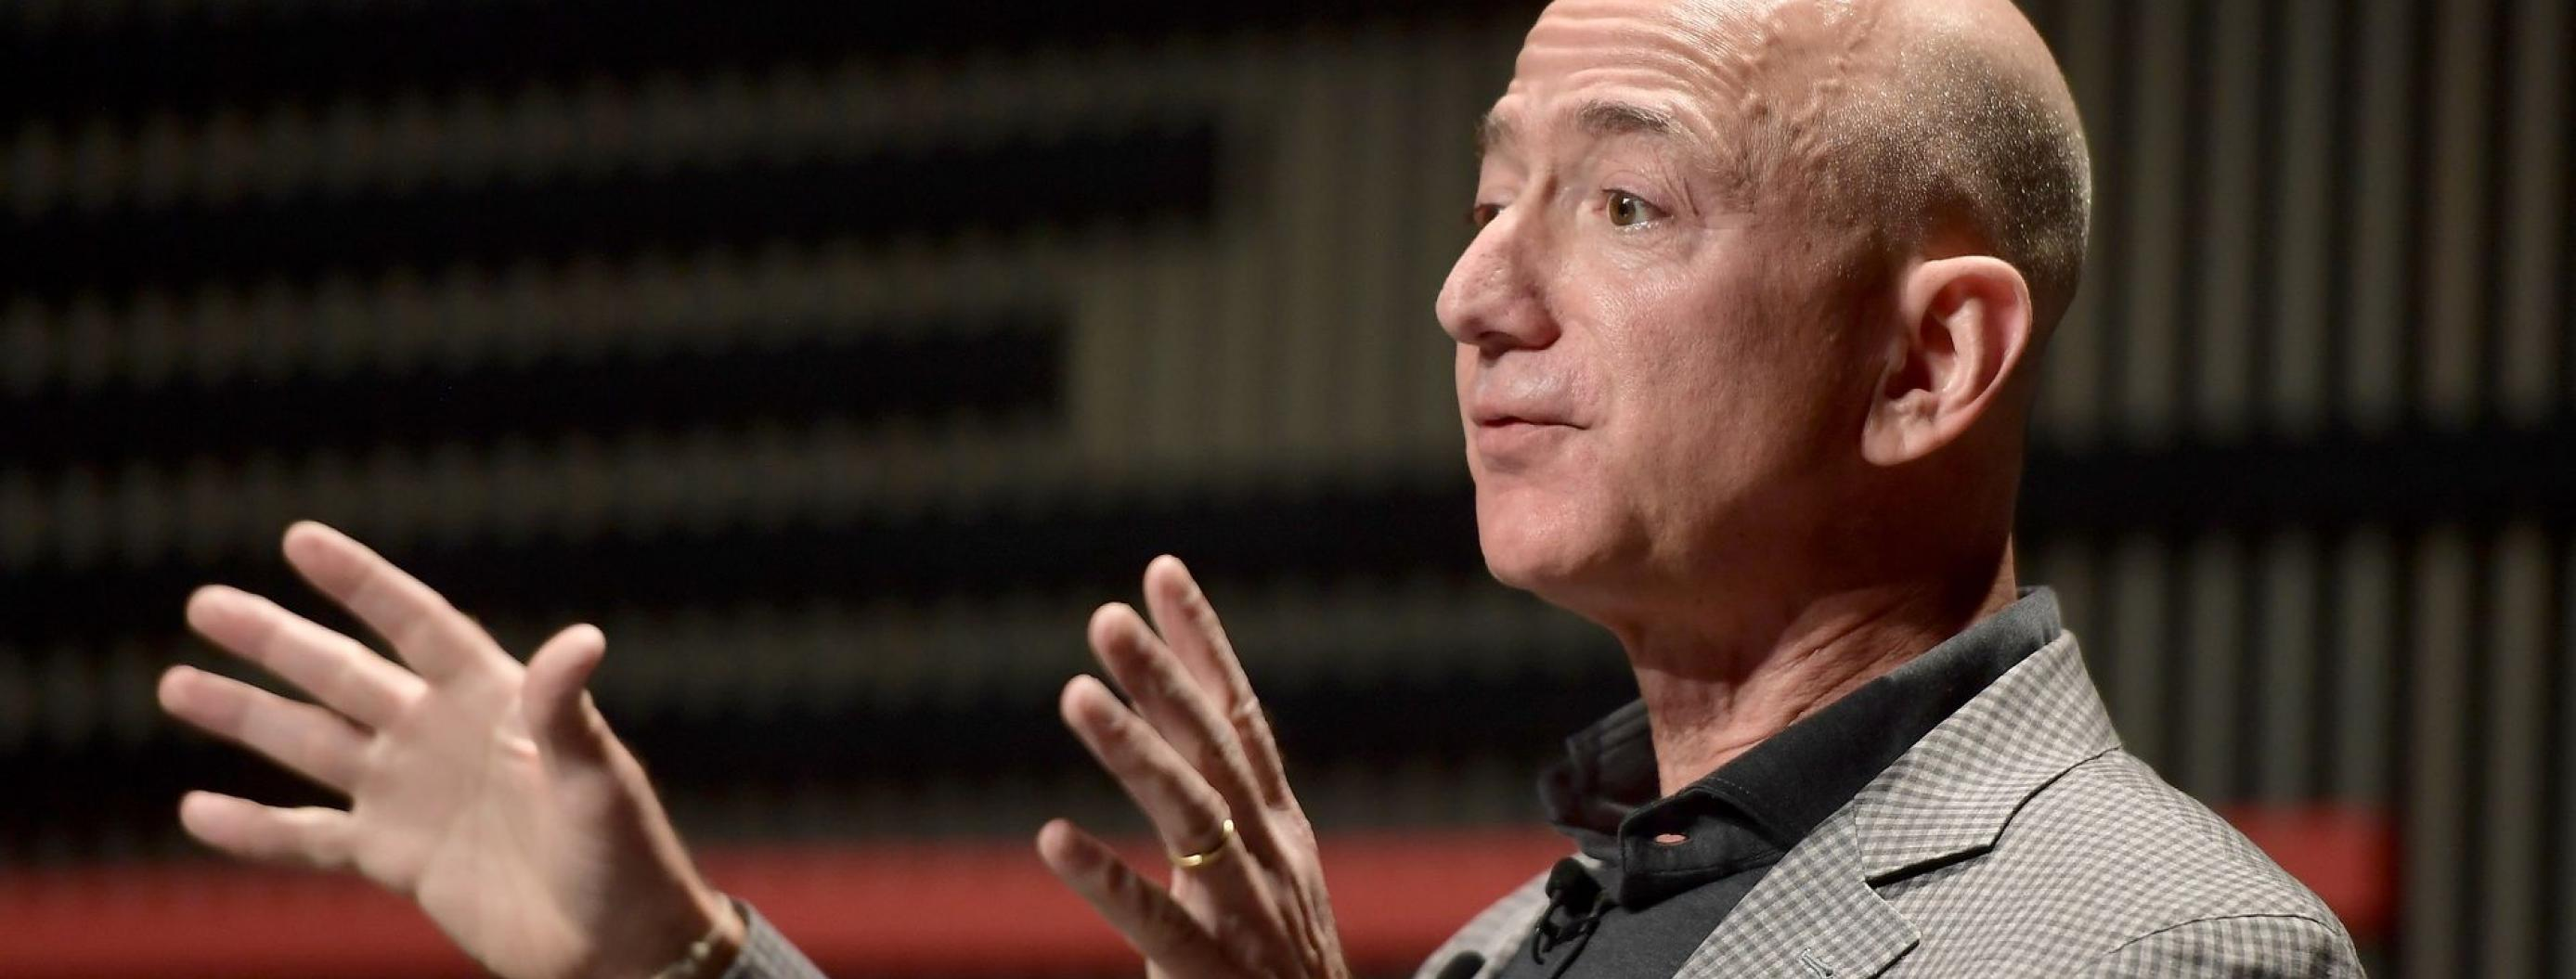 Jeff Bezos Defends Spending Billions on His Space Travel Venture